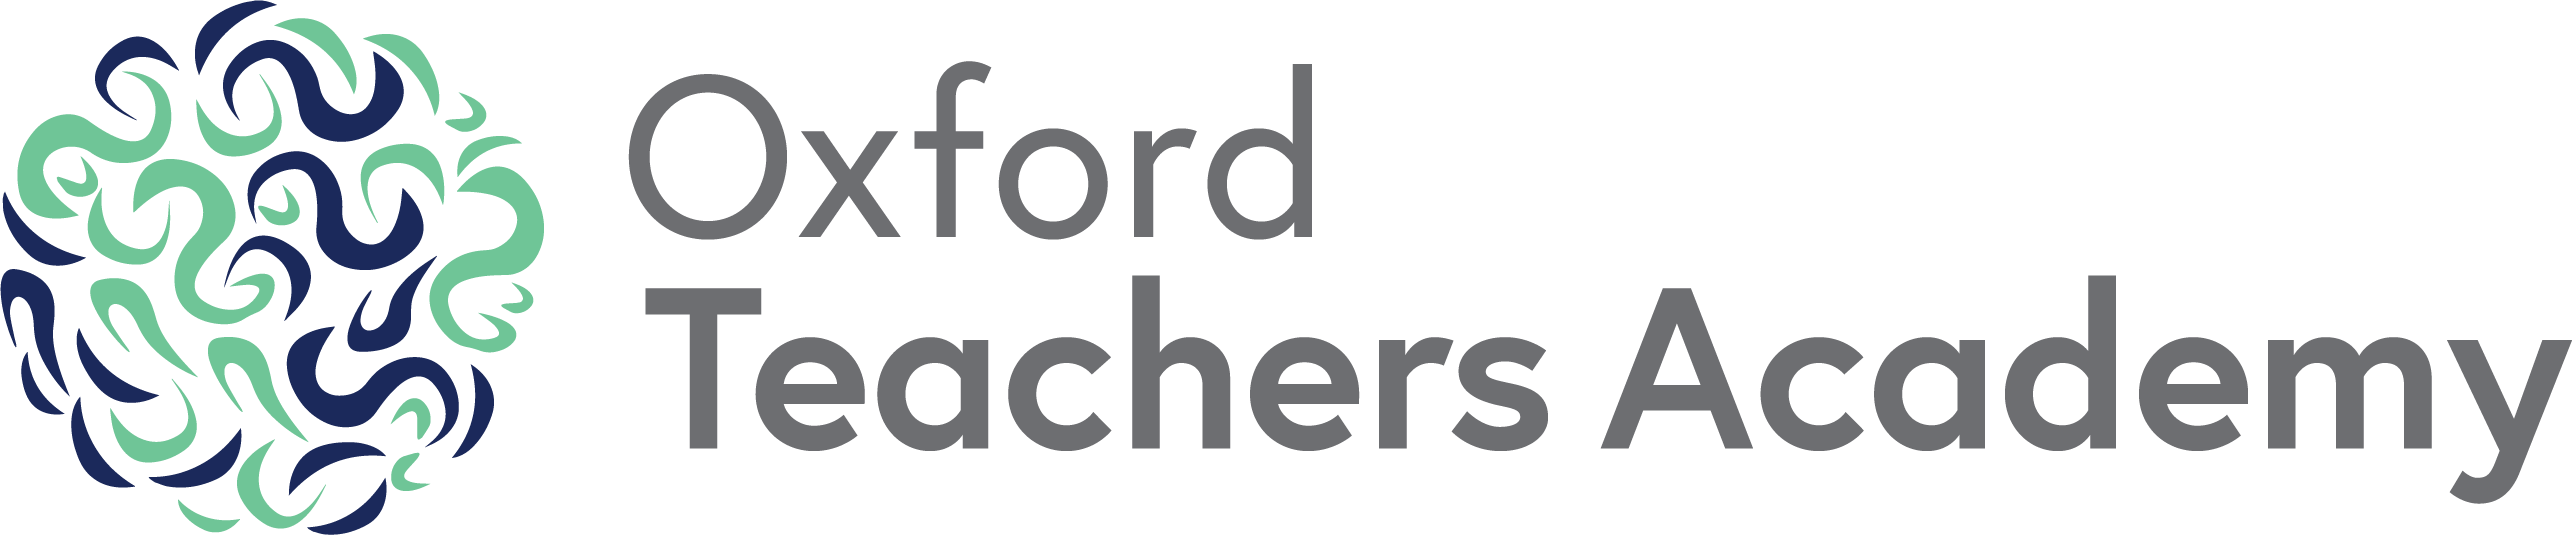 Oxford Teachers Academy